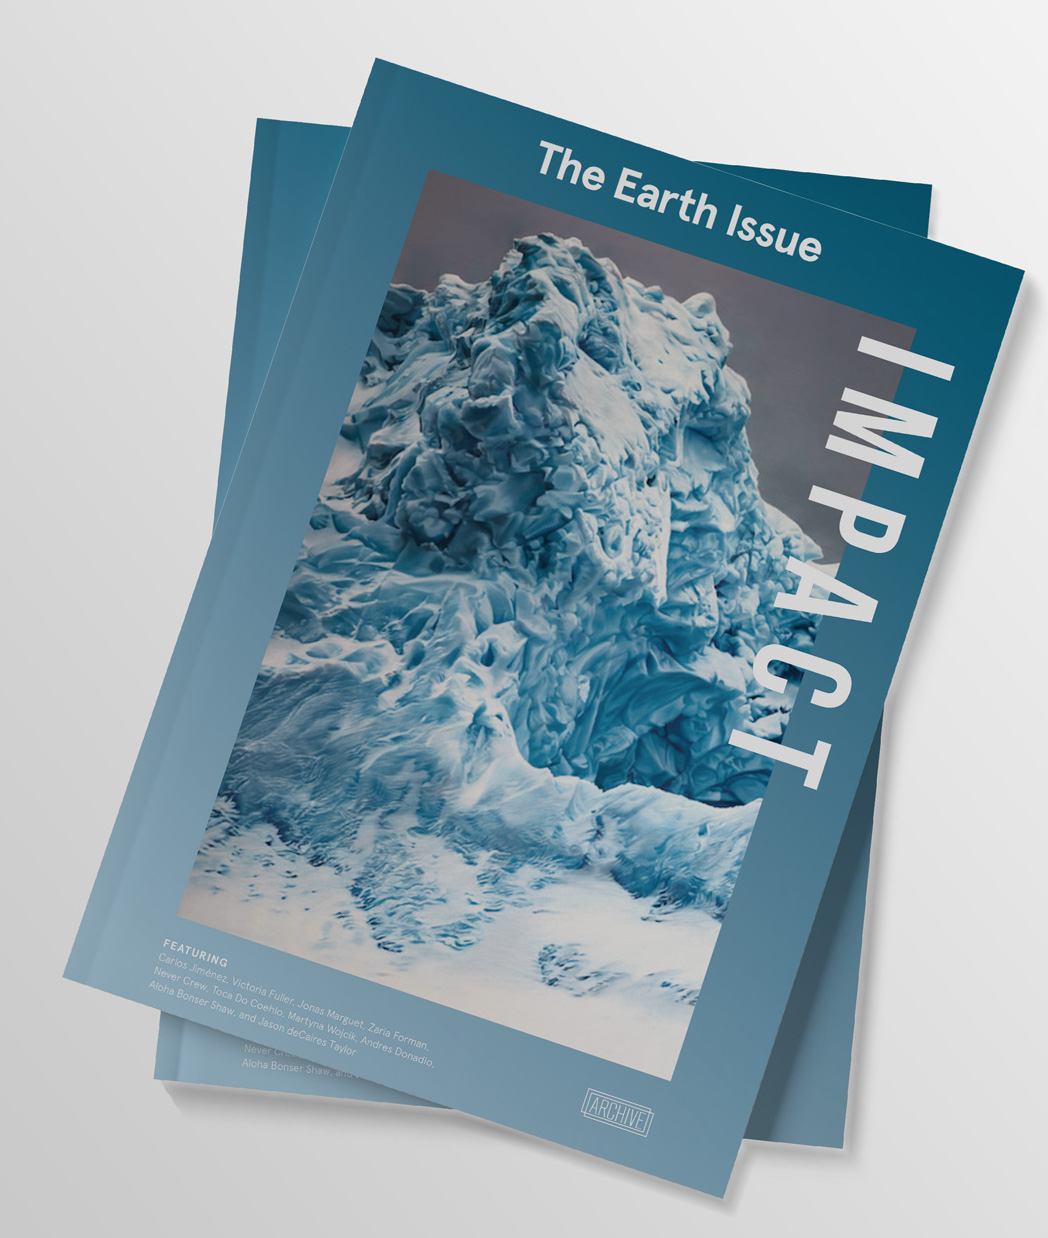 the earth issue - artist highlight - 24 may 2018THE EARTH ISSUE is a collective of artists and creative professionals working at the intersection of fine art and environmentalism. Through publications, exhibitions, educational talks and other collaborative projects, THE EARTH ISSUE provides a platform for creative thinkers, and visual artists who seek to raise awareness about our environment.READ ARTICLE